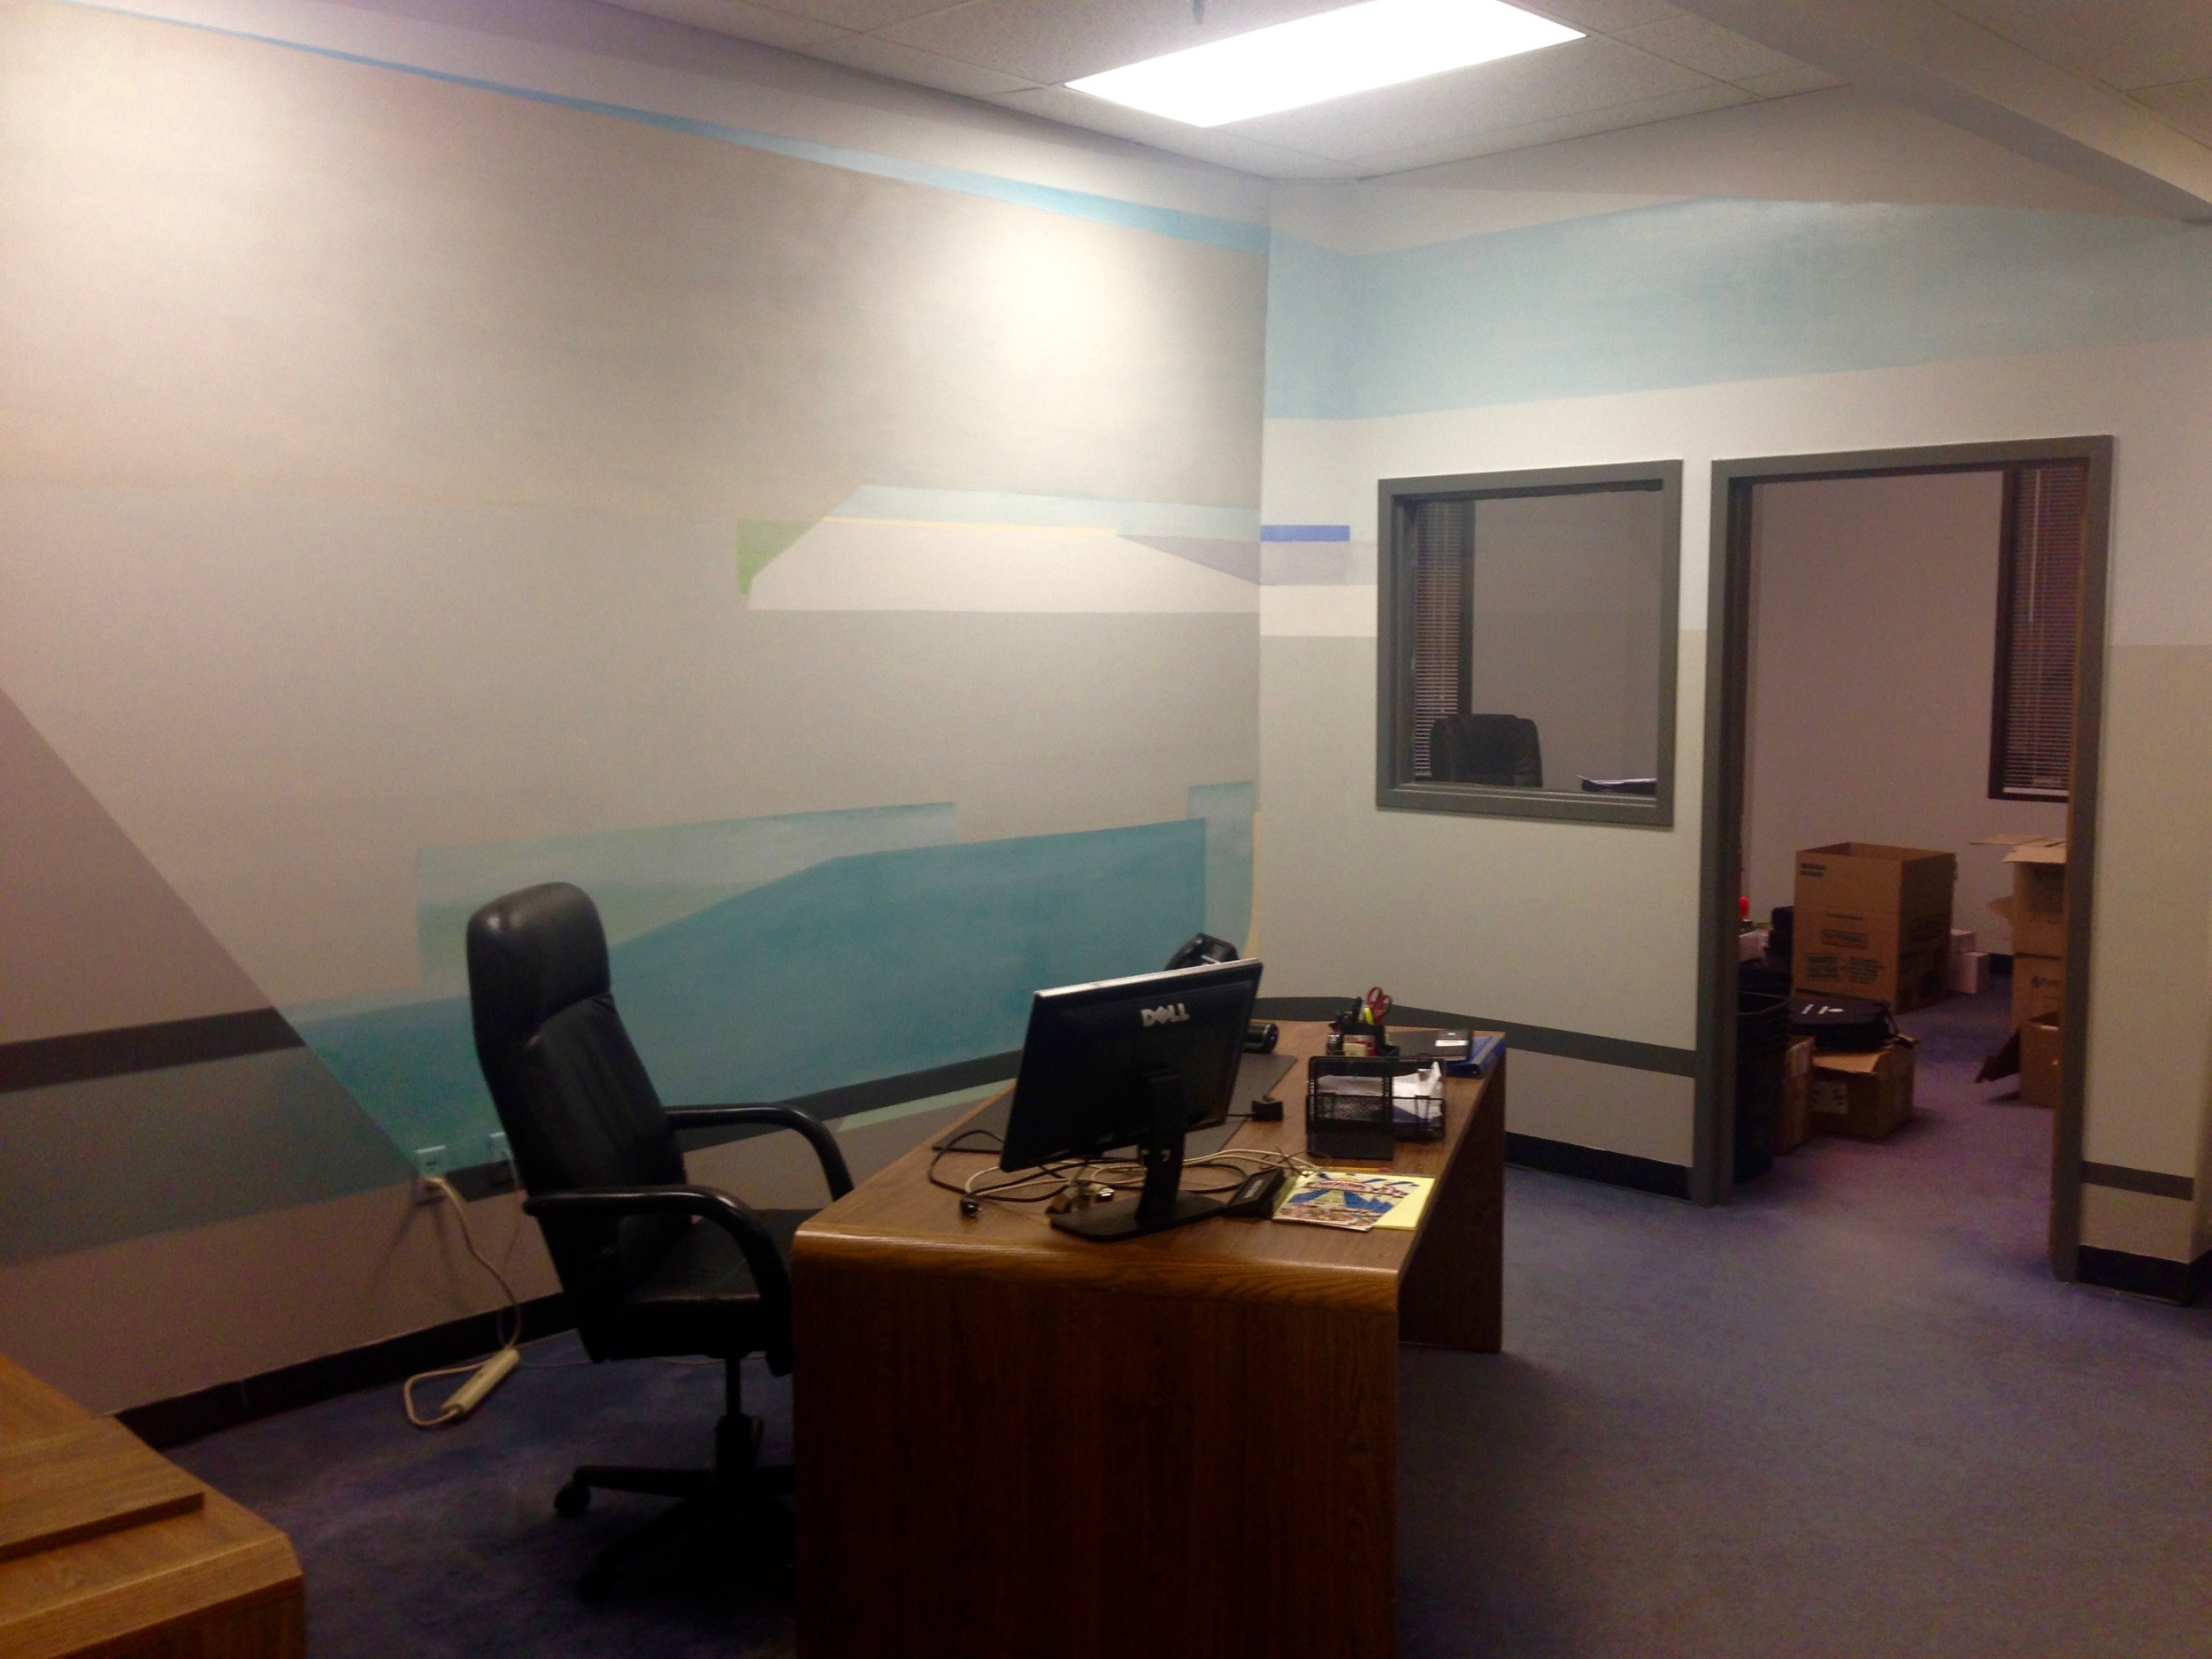 Office space entry area - another view